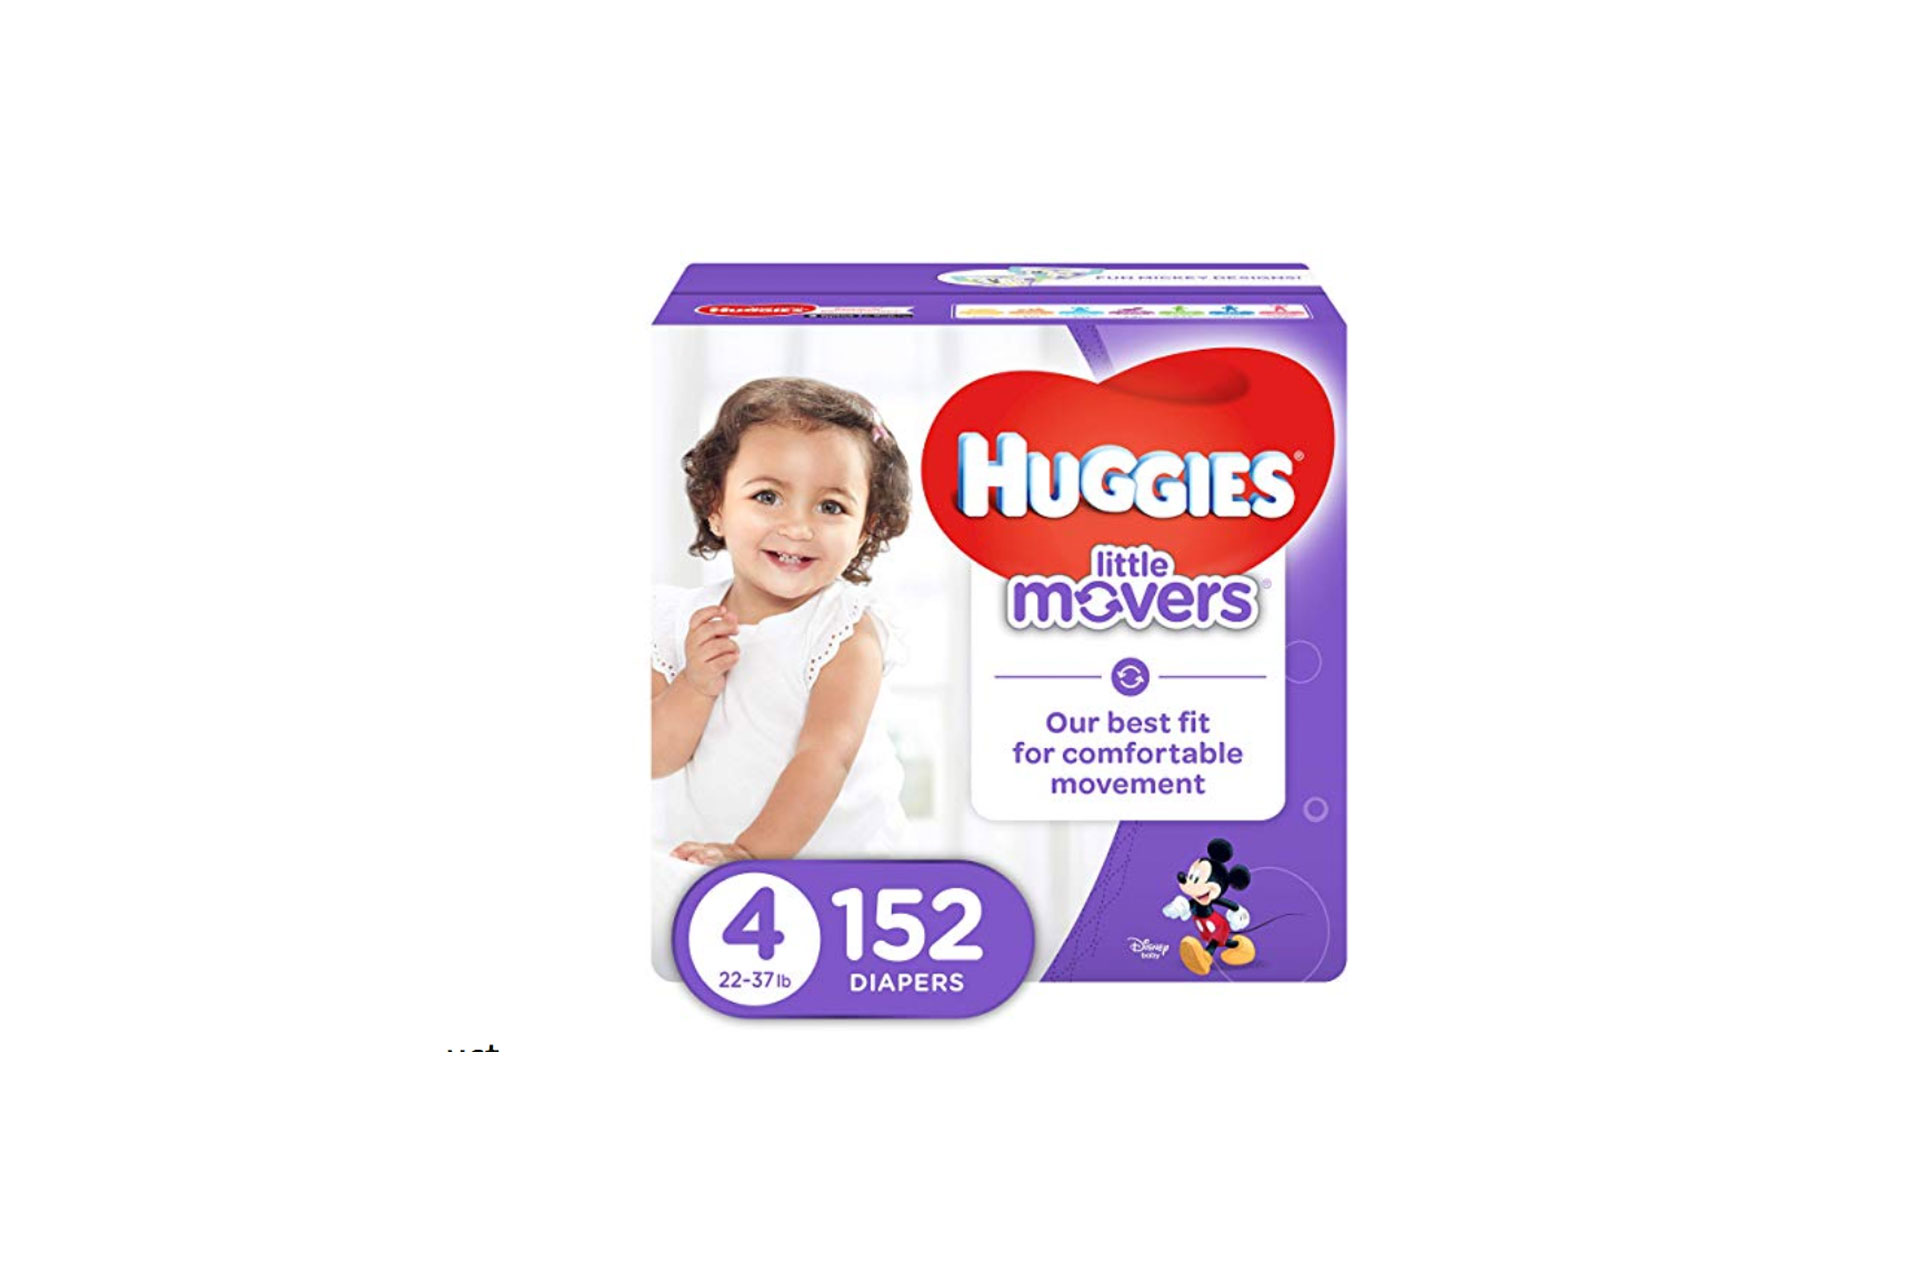 Huggies Little Movers; Courtesy of Amazon